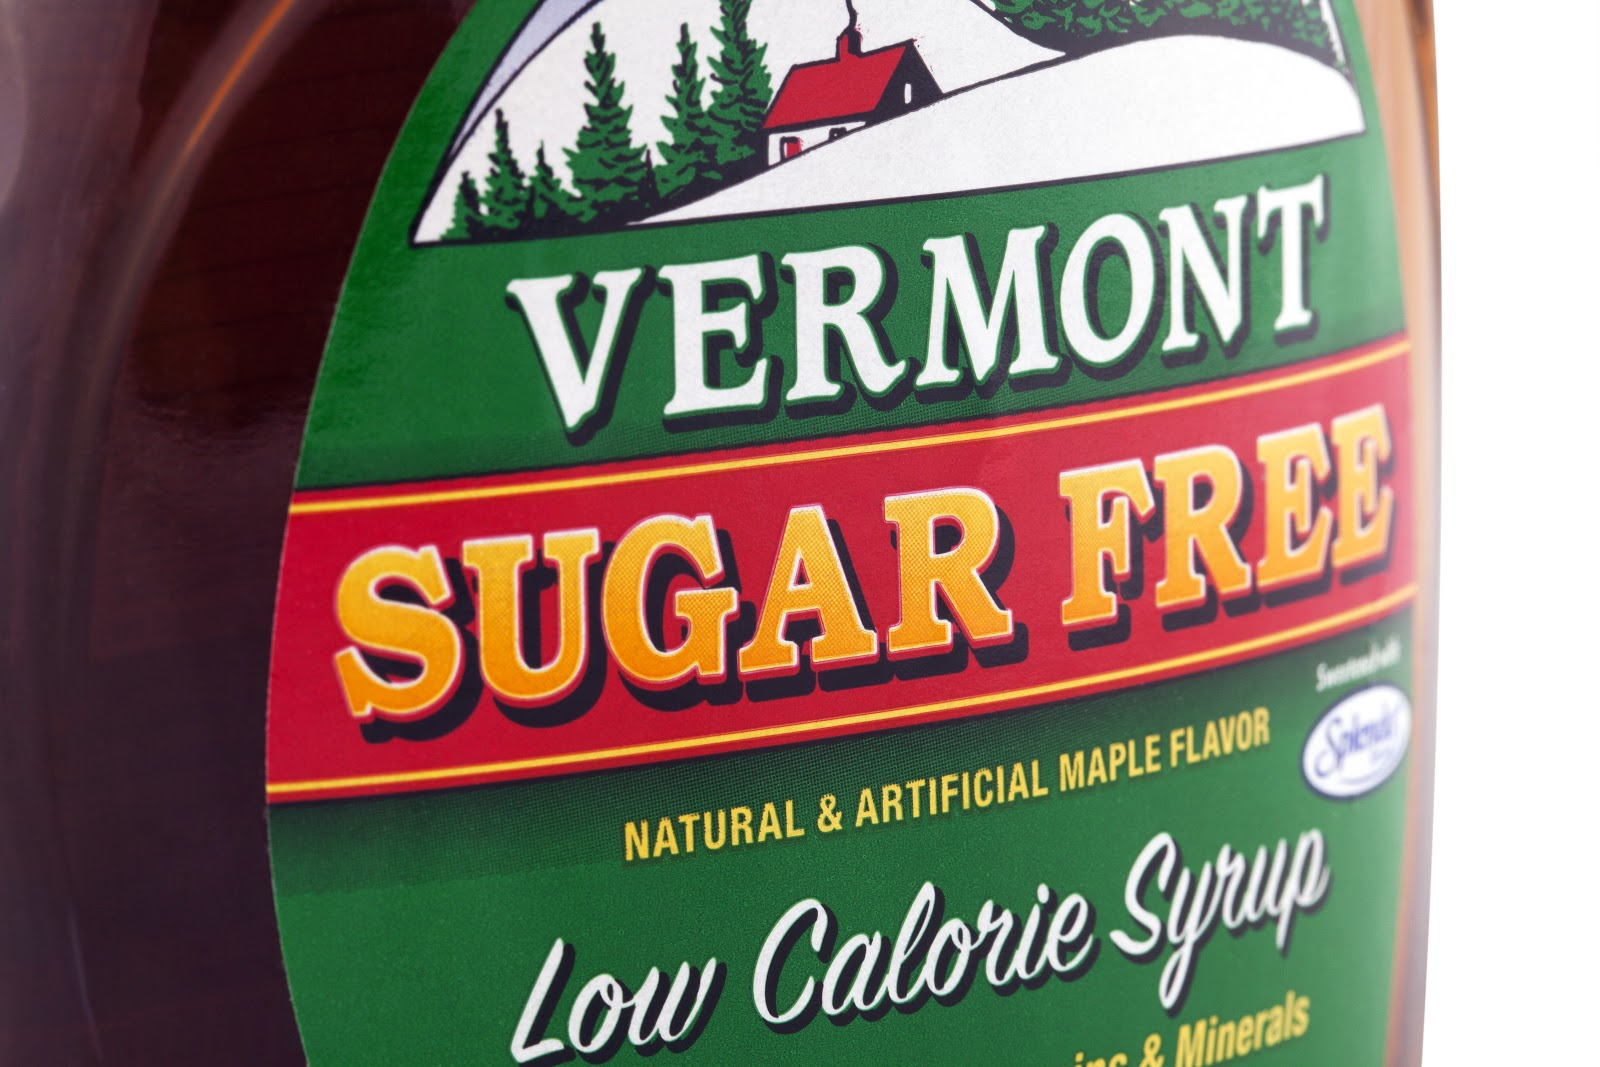 A maple syrup food label that is 'low calorie' and 'sugar fee' from Vermont.